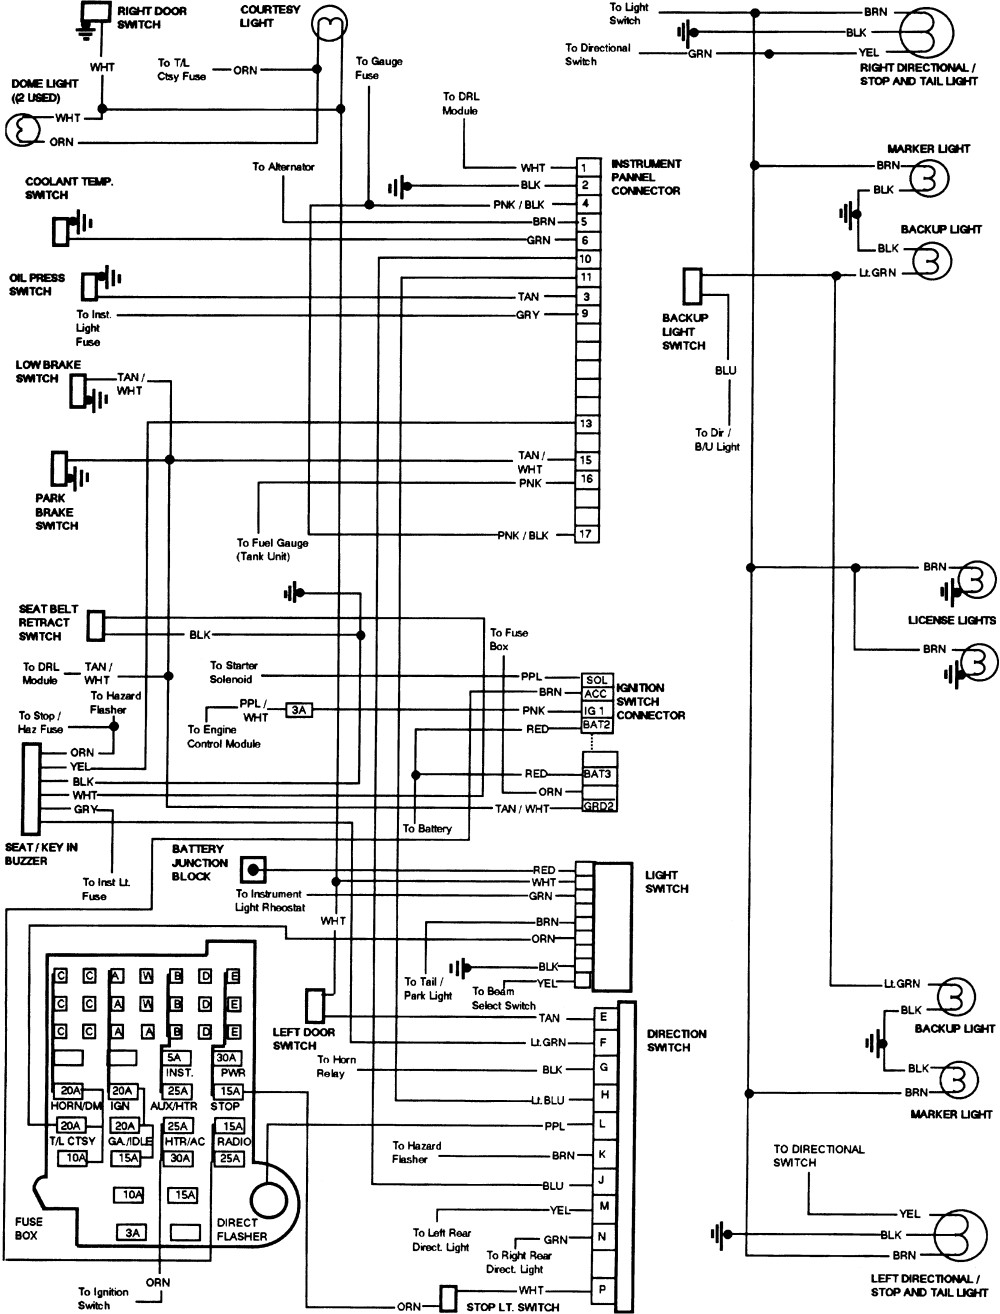 1990 Chevy Silverado Steering Column Wiring Diagram